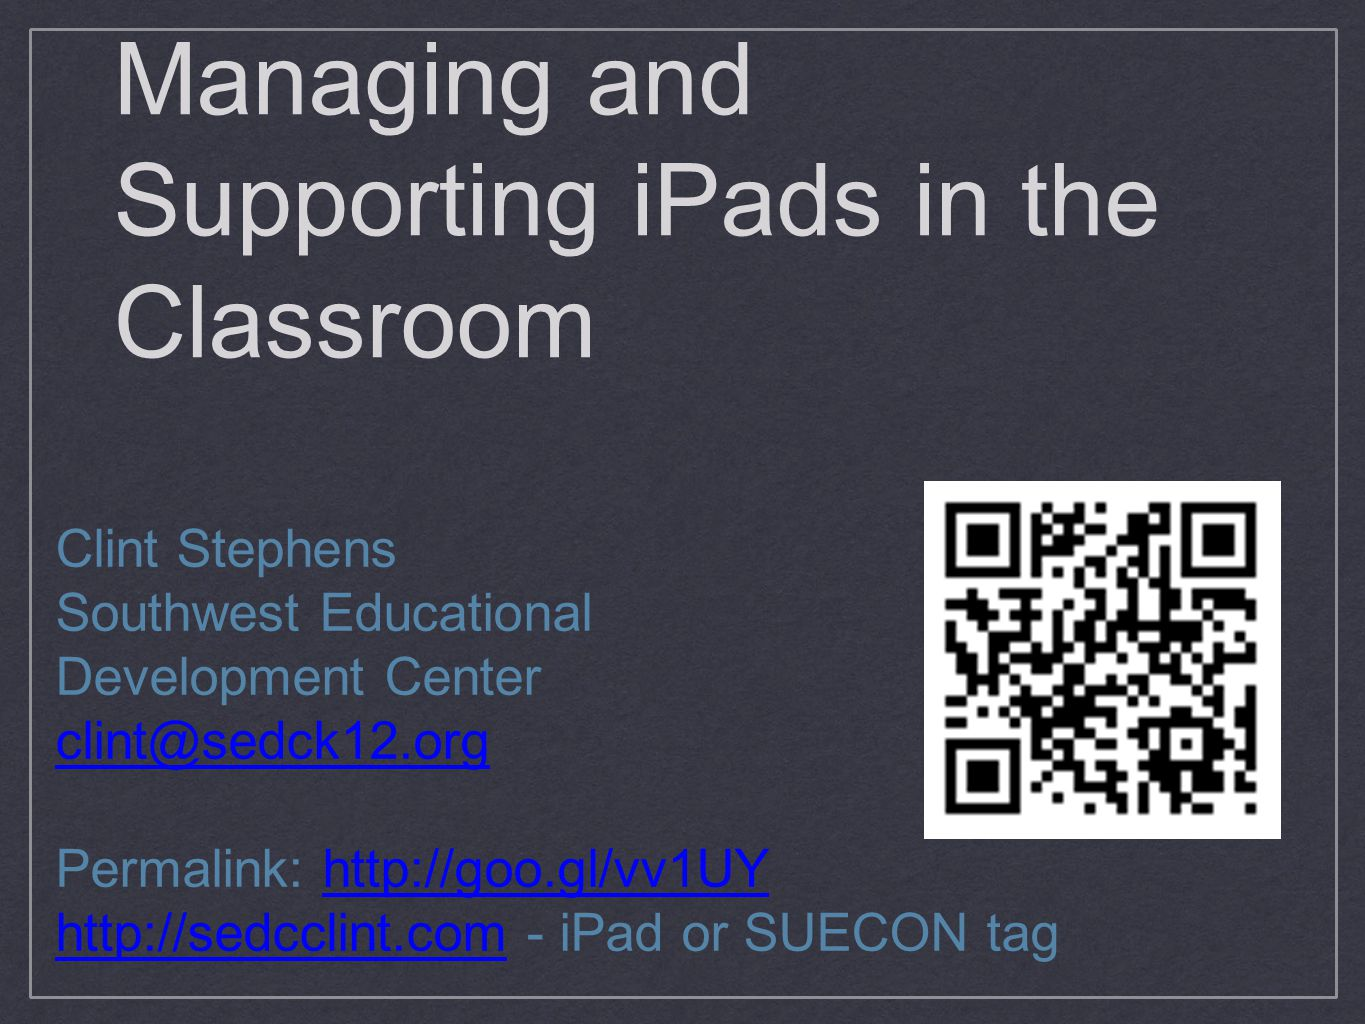 Managing and Supporting iPads in the Classroom Clint Stephens Southwest Educational Development Center clint@sedck12.org Permalink: http://goo.gl/vv1UYhttp://goo.gl/vv1UY http://sedcclint.comhttp://sedcclint.com - iPad or SUECON tag